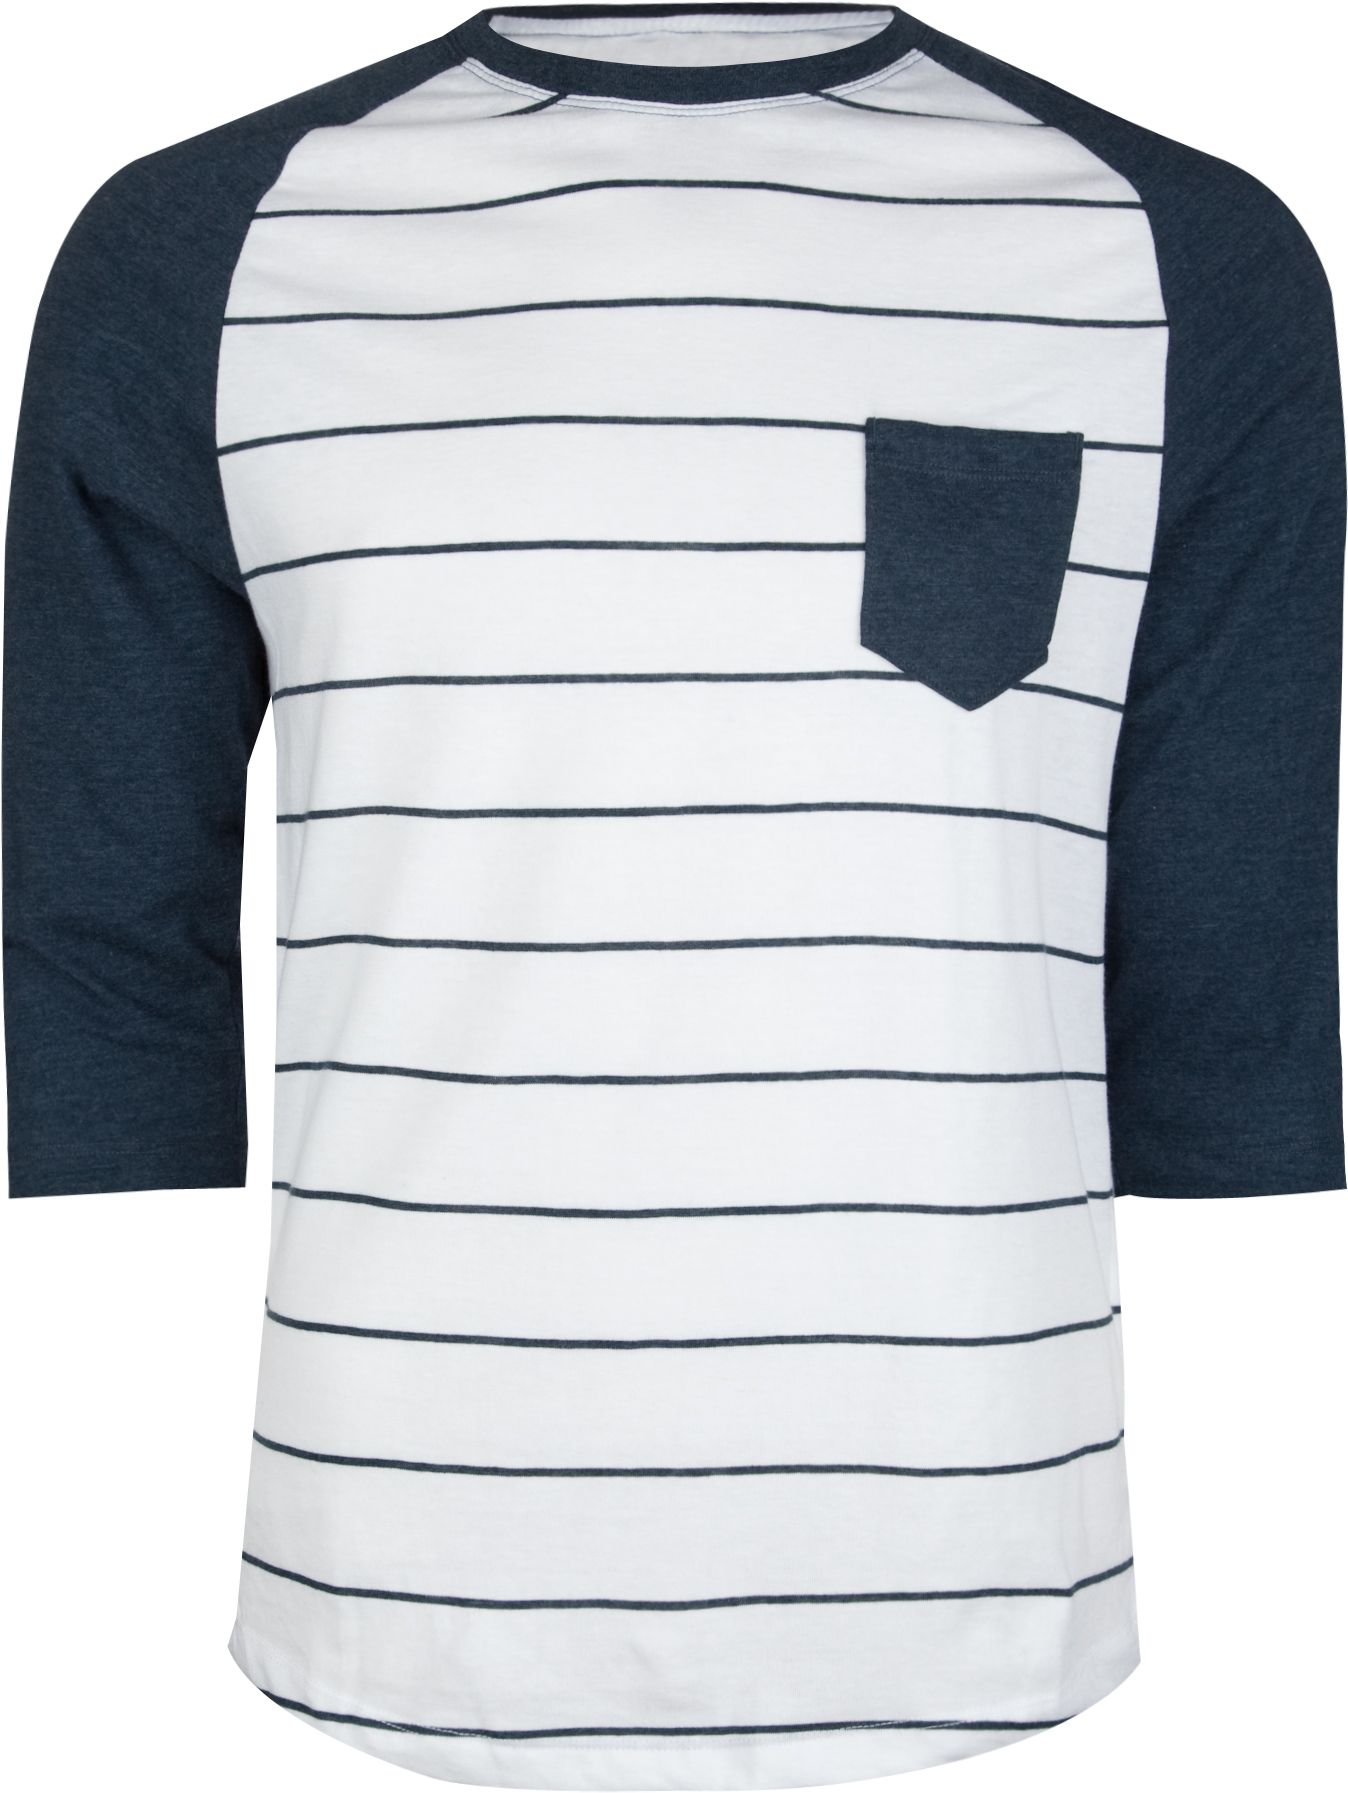 Pro tag 100 cotton 3 4 sleeve raglan baseball shirt in white black - Retrofit Stripe Raglan Mens Baseball Tee 201601210 L S Baseball Tees Tillys